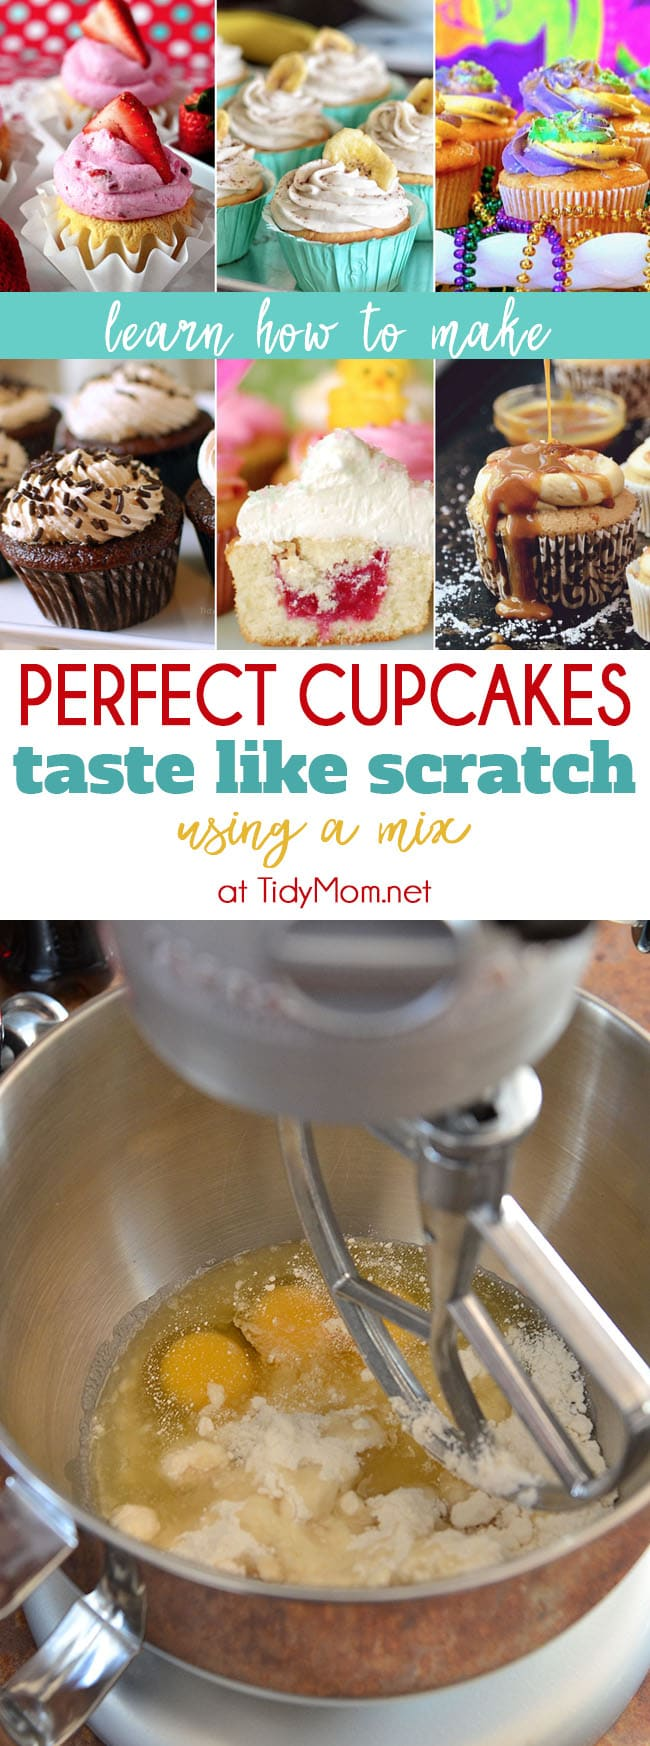 How Many Cupcakes In A Cake Mix : cupcakes, Perfect, Cupcake, Recipe, Using